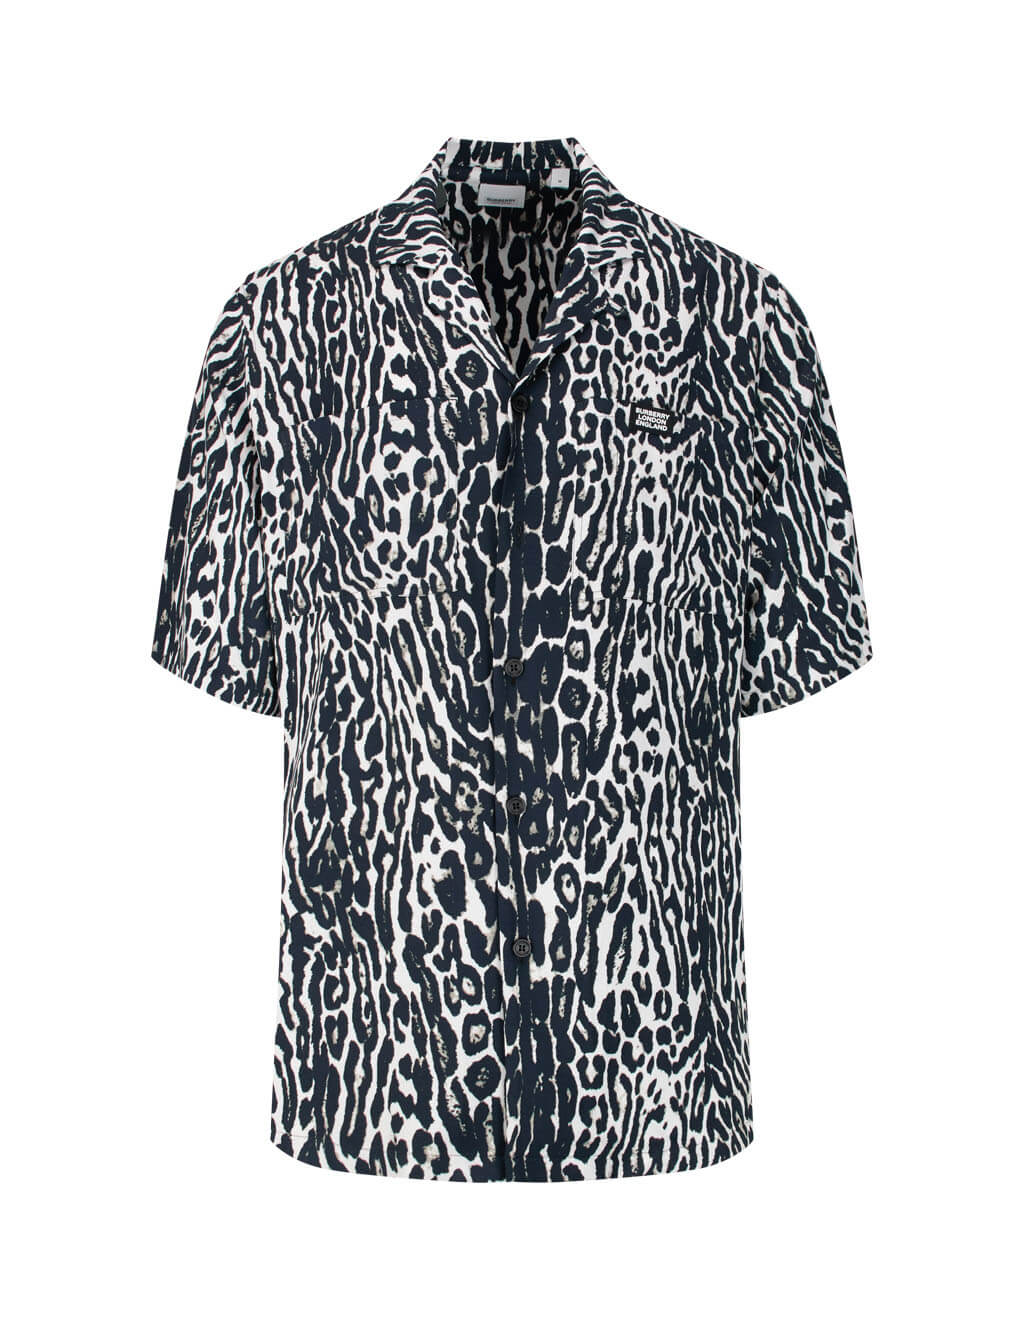 Burberry Men's Black/White Leopard Twill Shirt 8023943 A1879